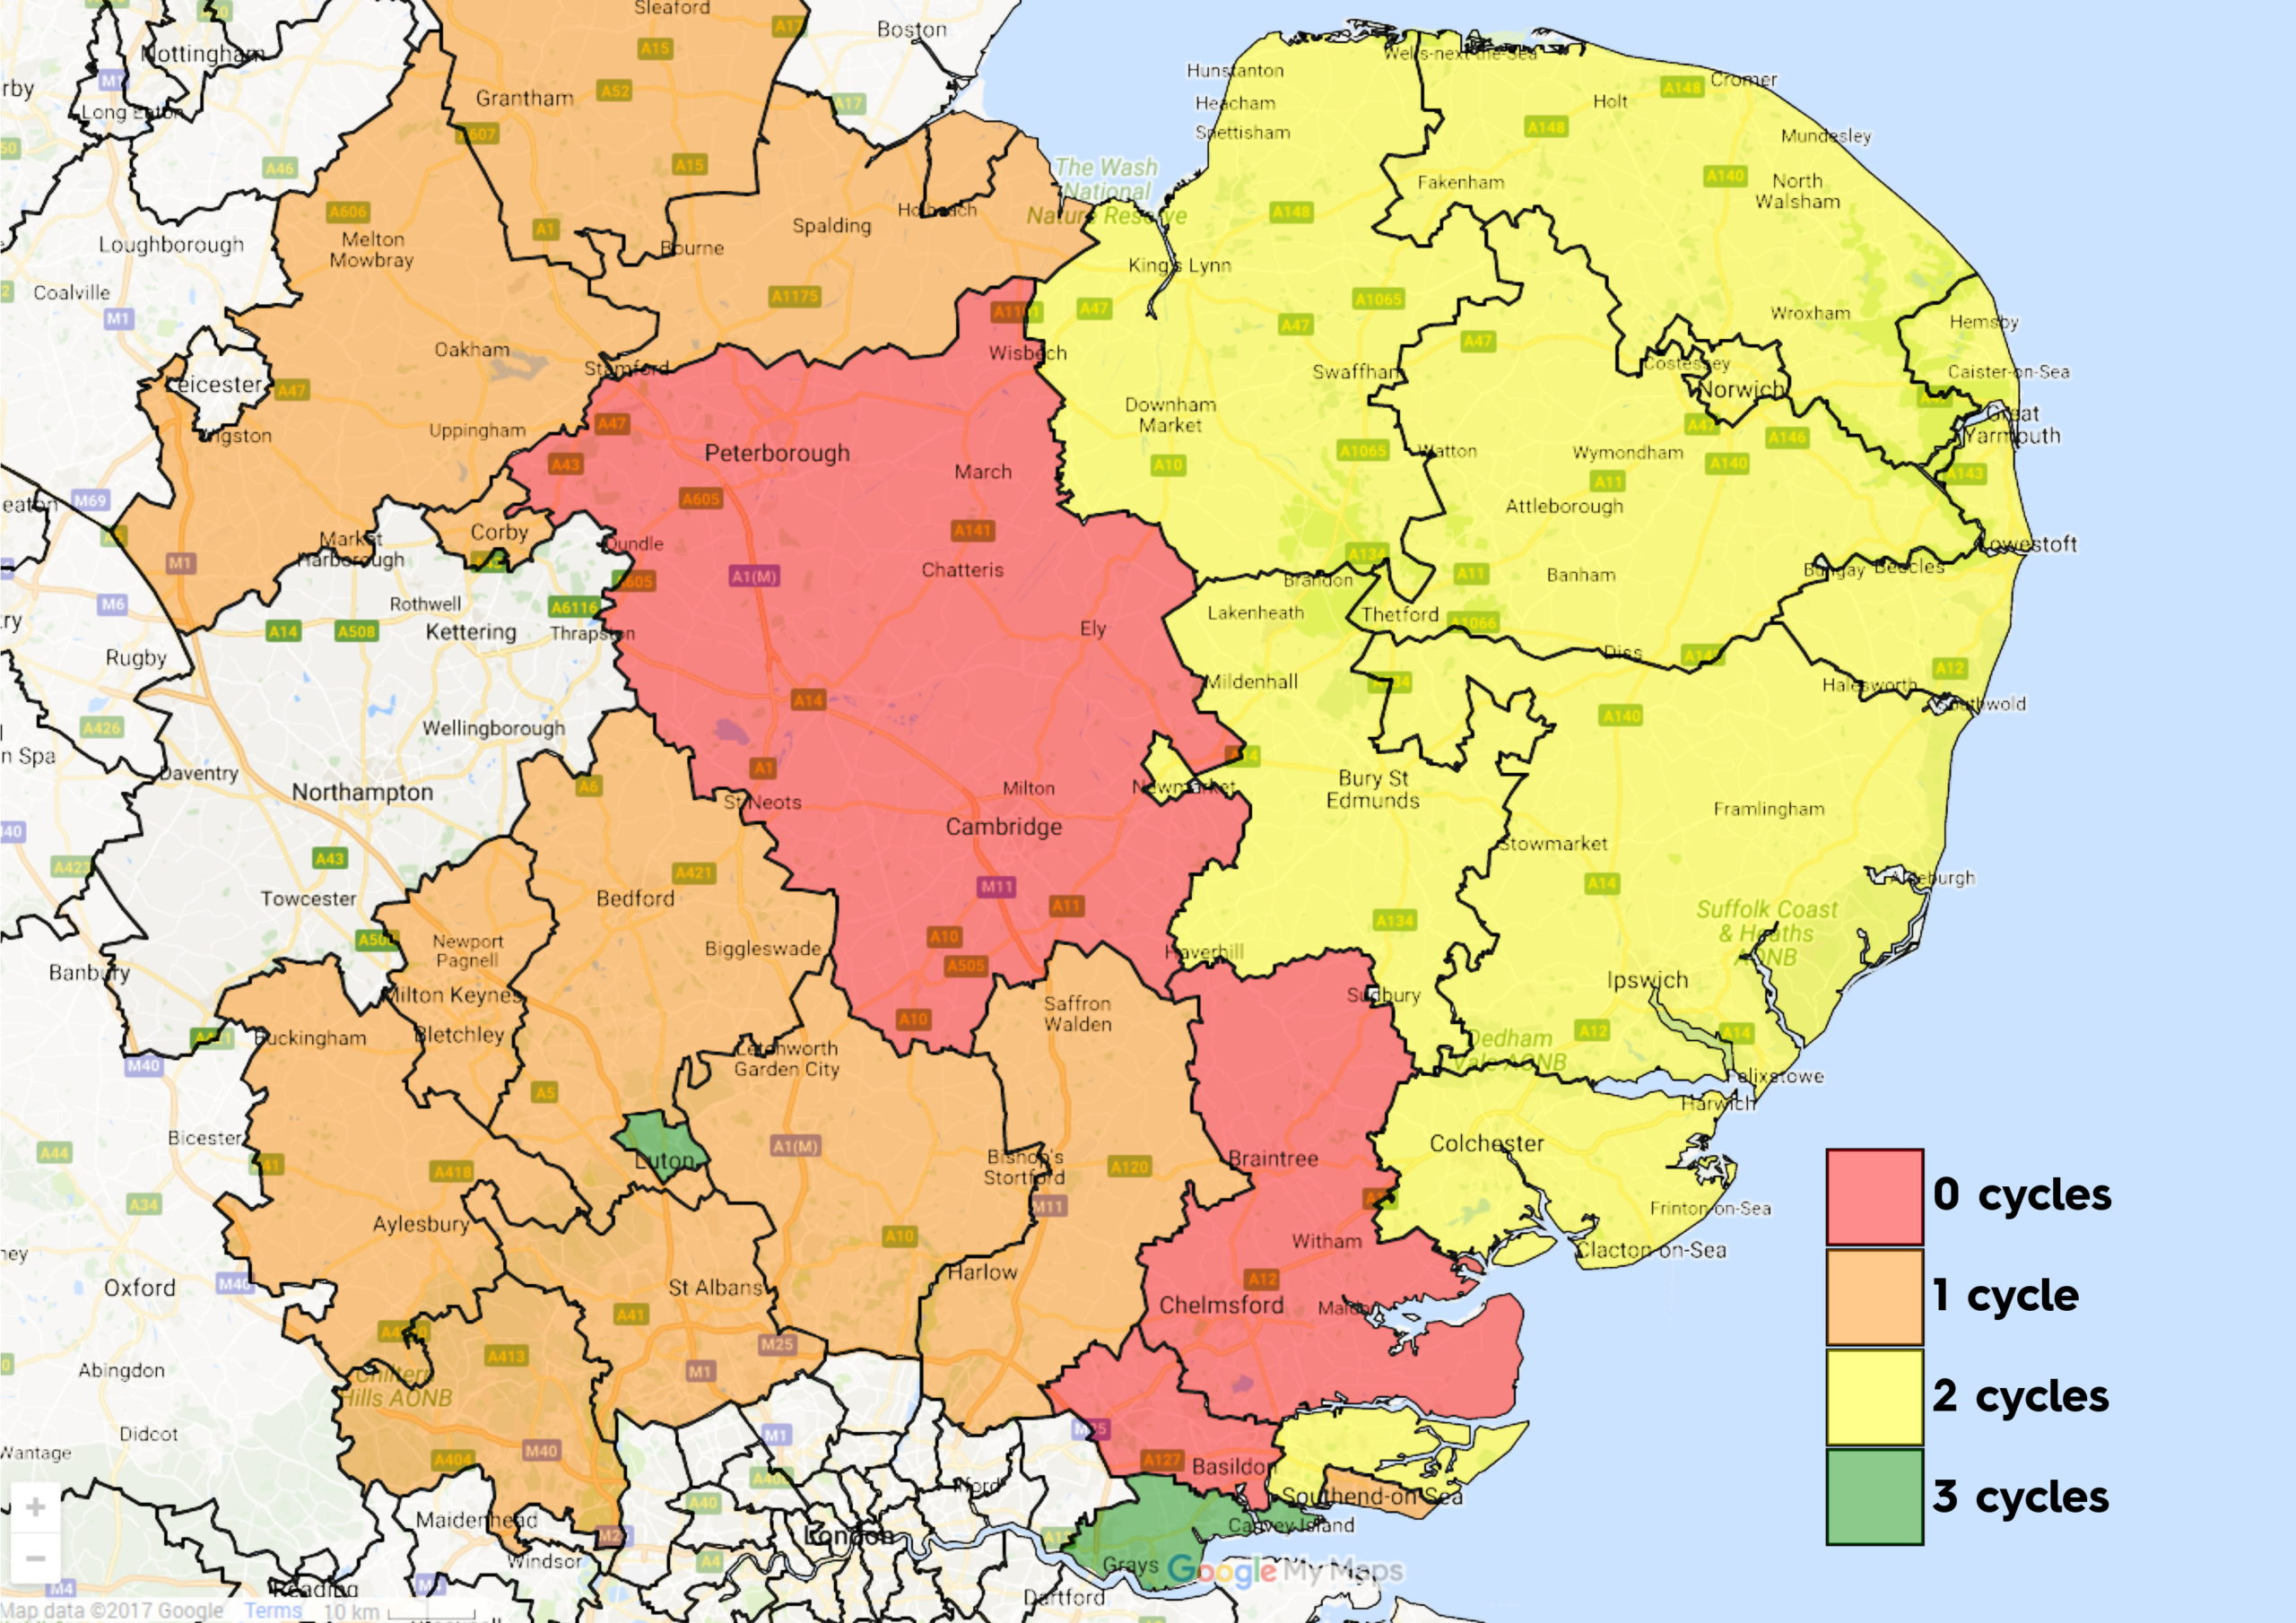 East Anglia CCG map Feb 2020 funding options for IVF